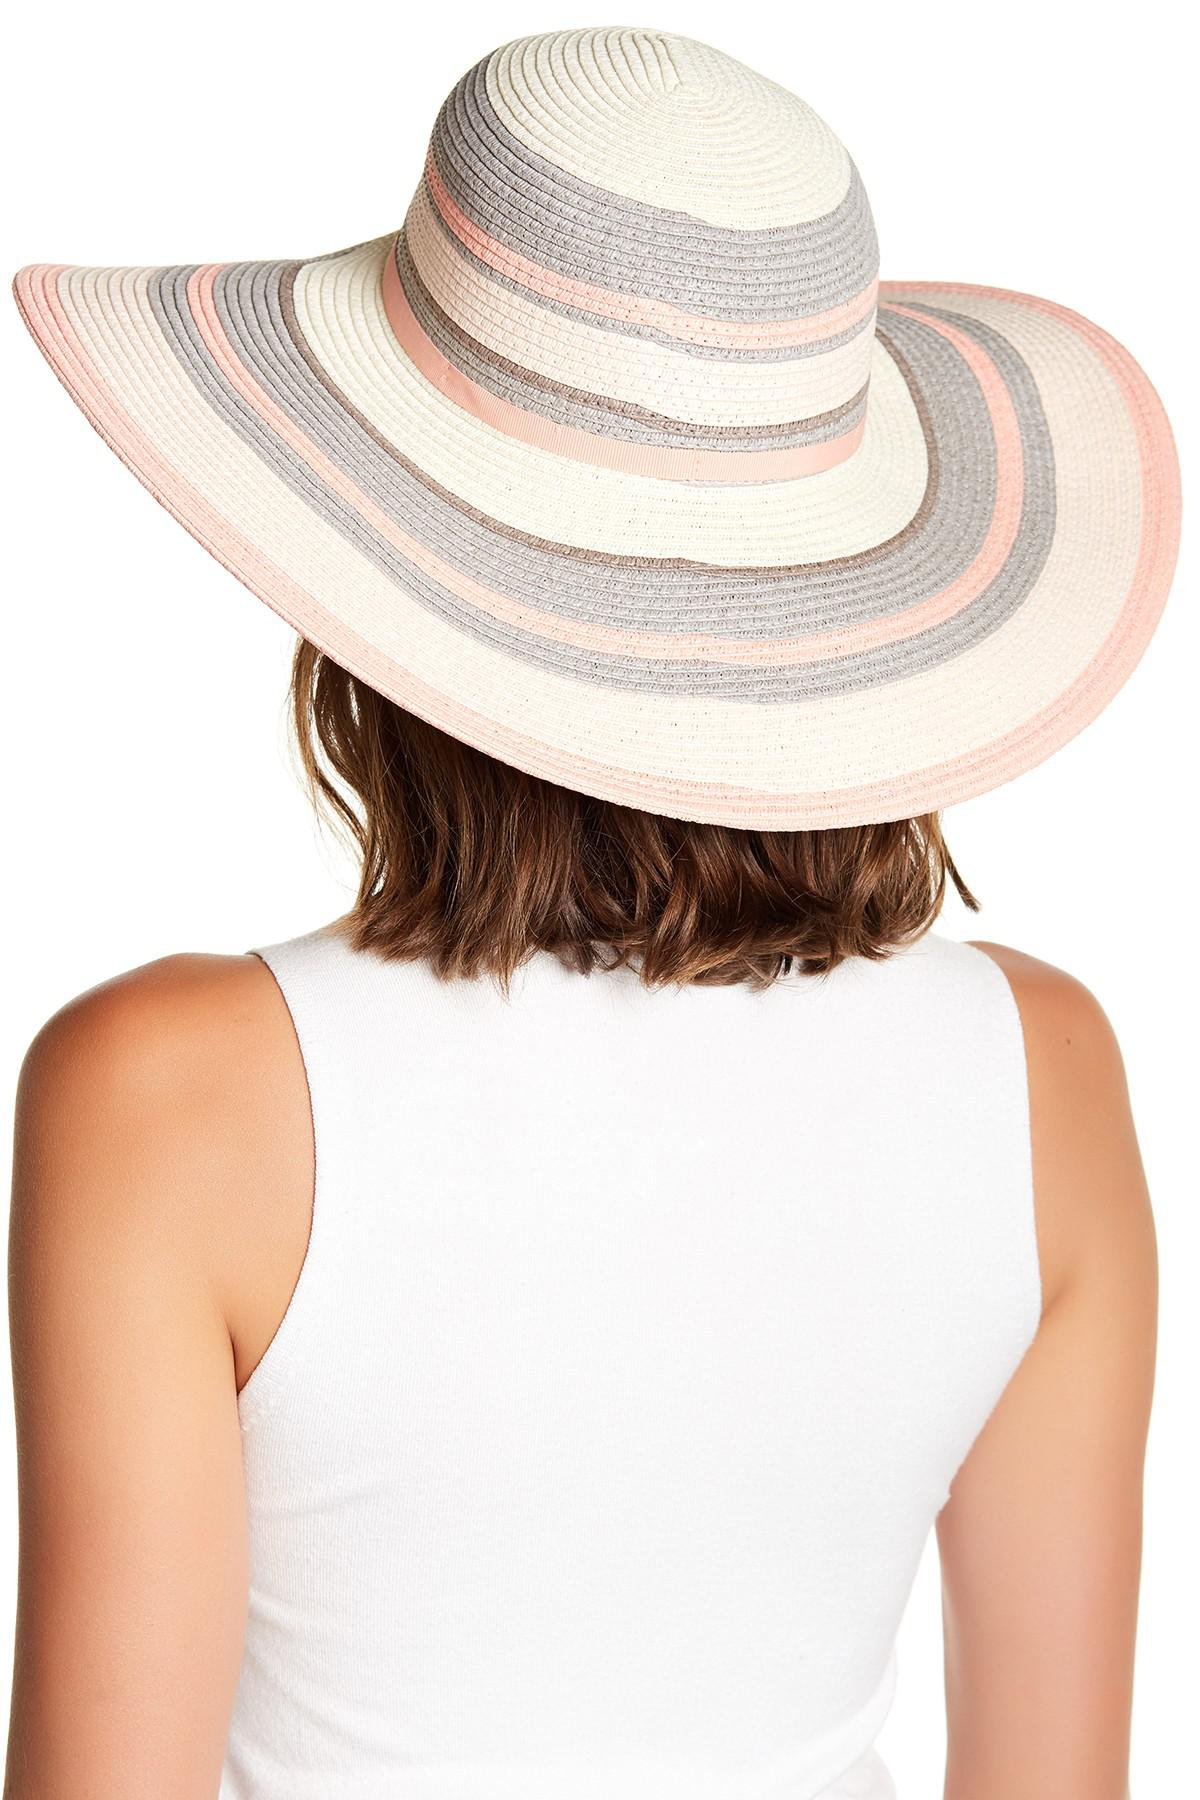 Lyst - Ted Baker Wide Brim Stripe Sun Hat in Natural 33a64efceadc